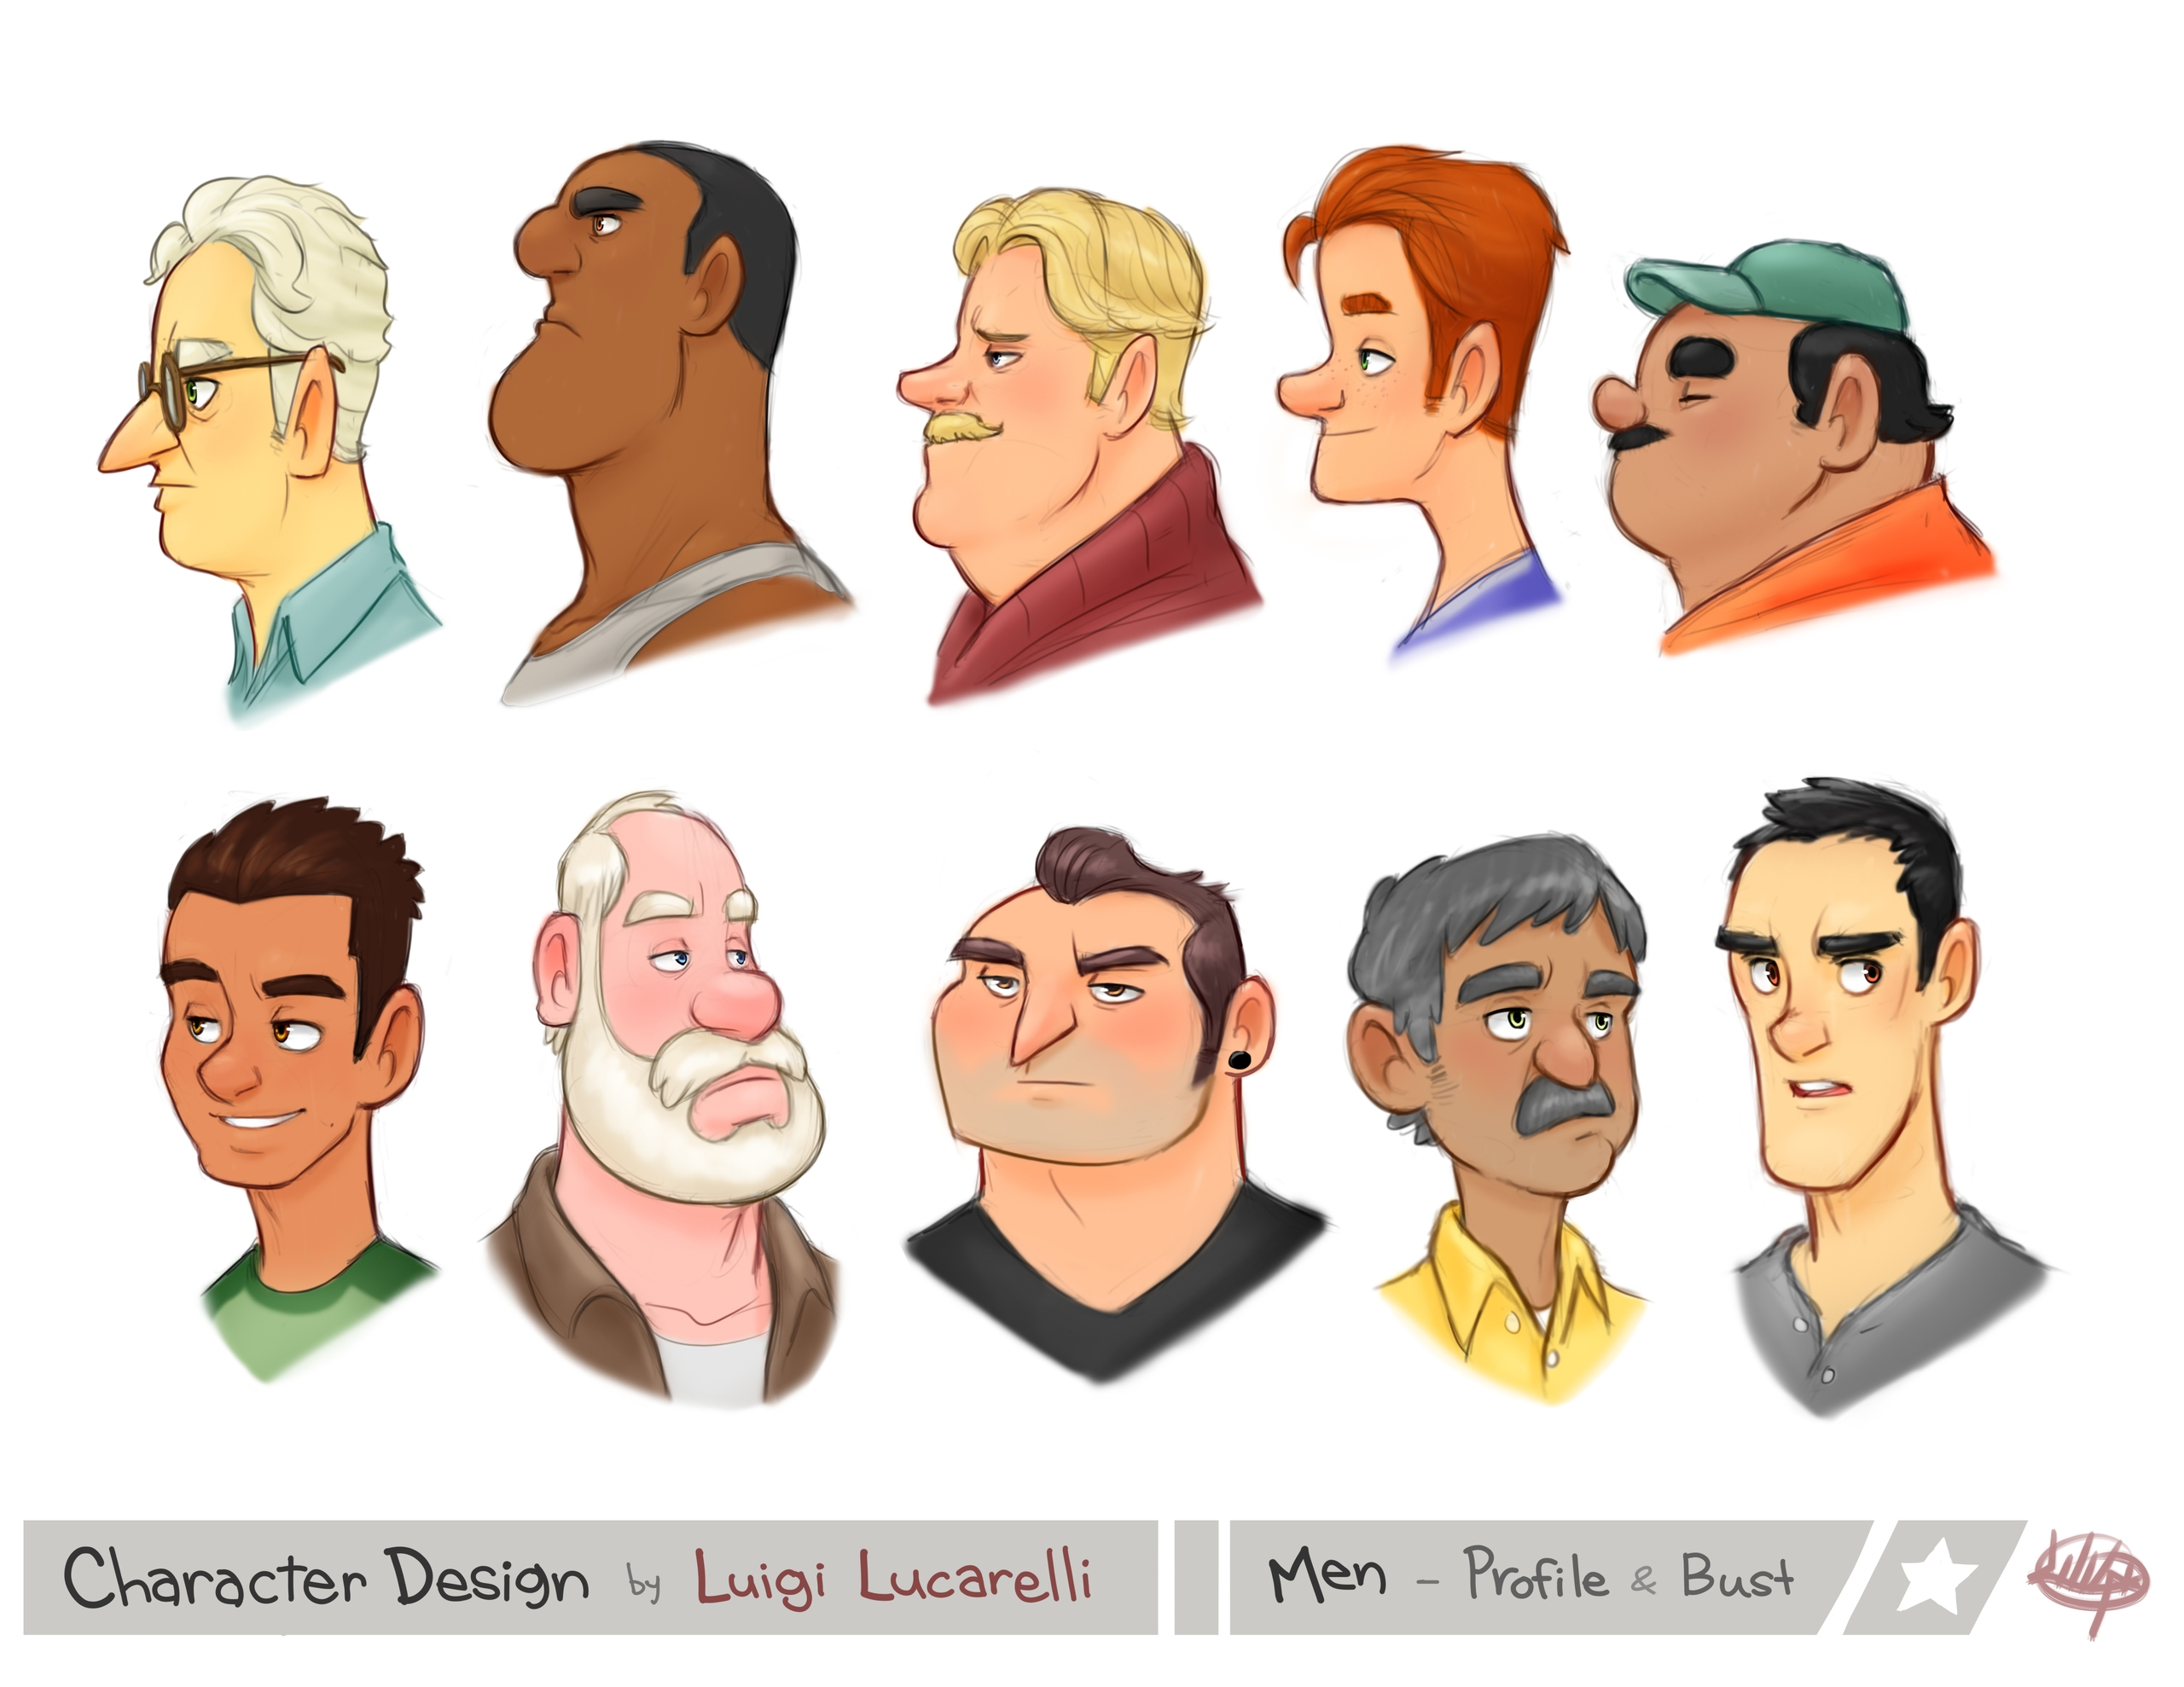 decided put Profiles Busts page - luigil-2352 | ello